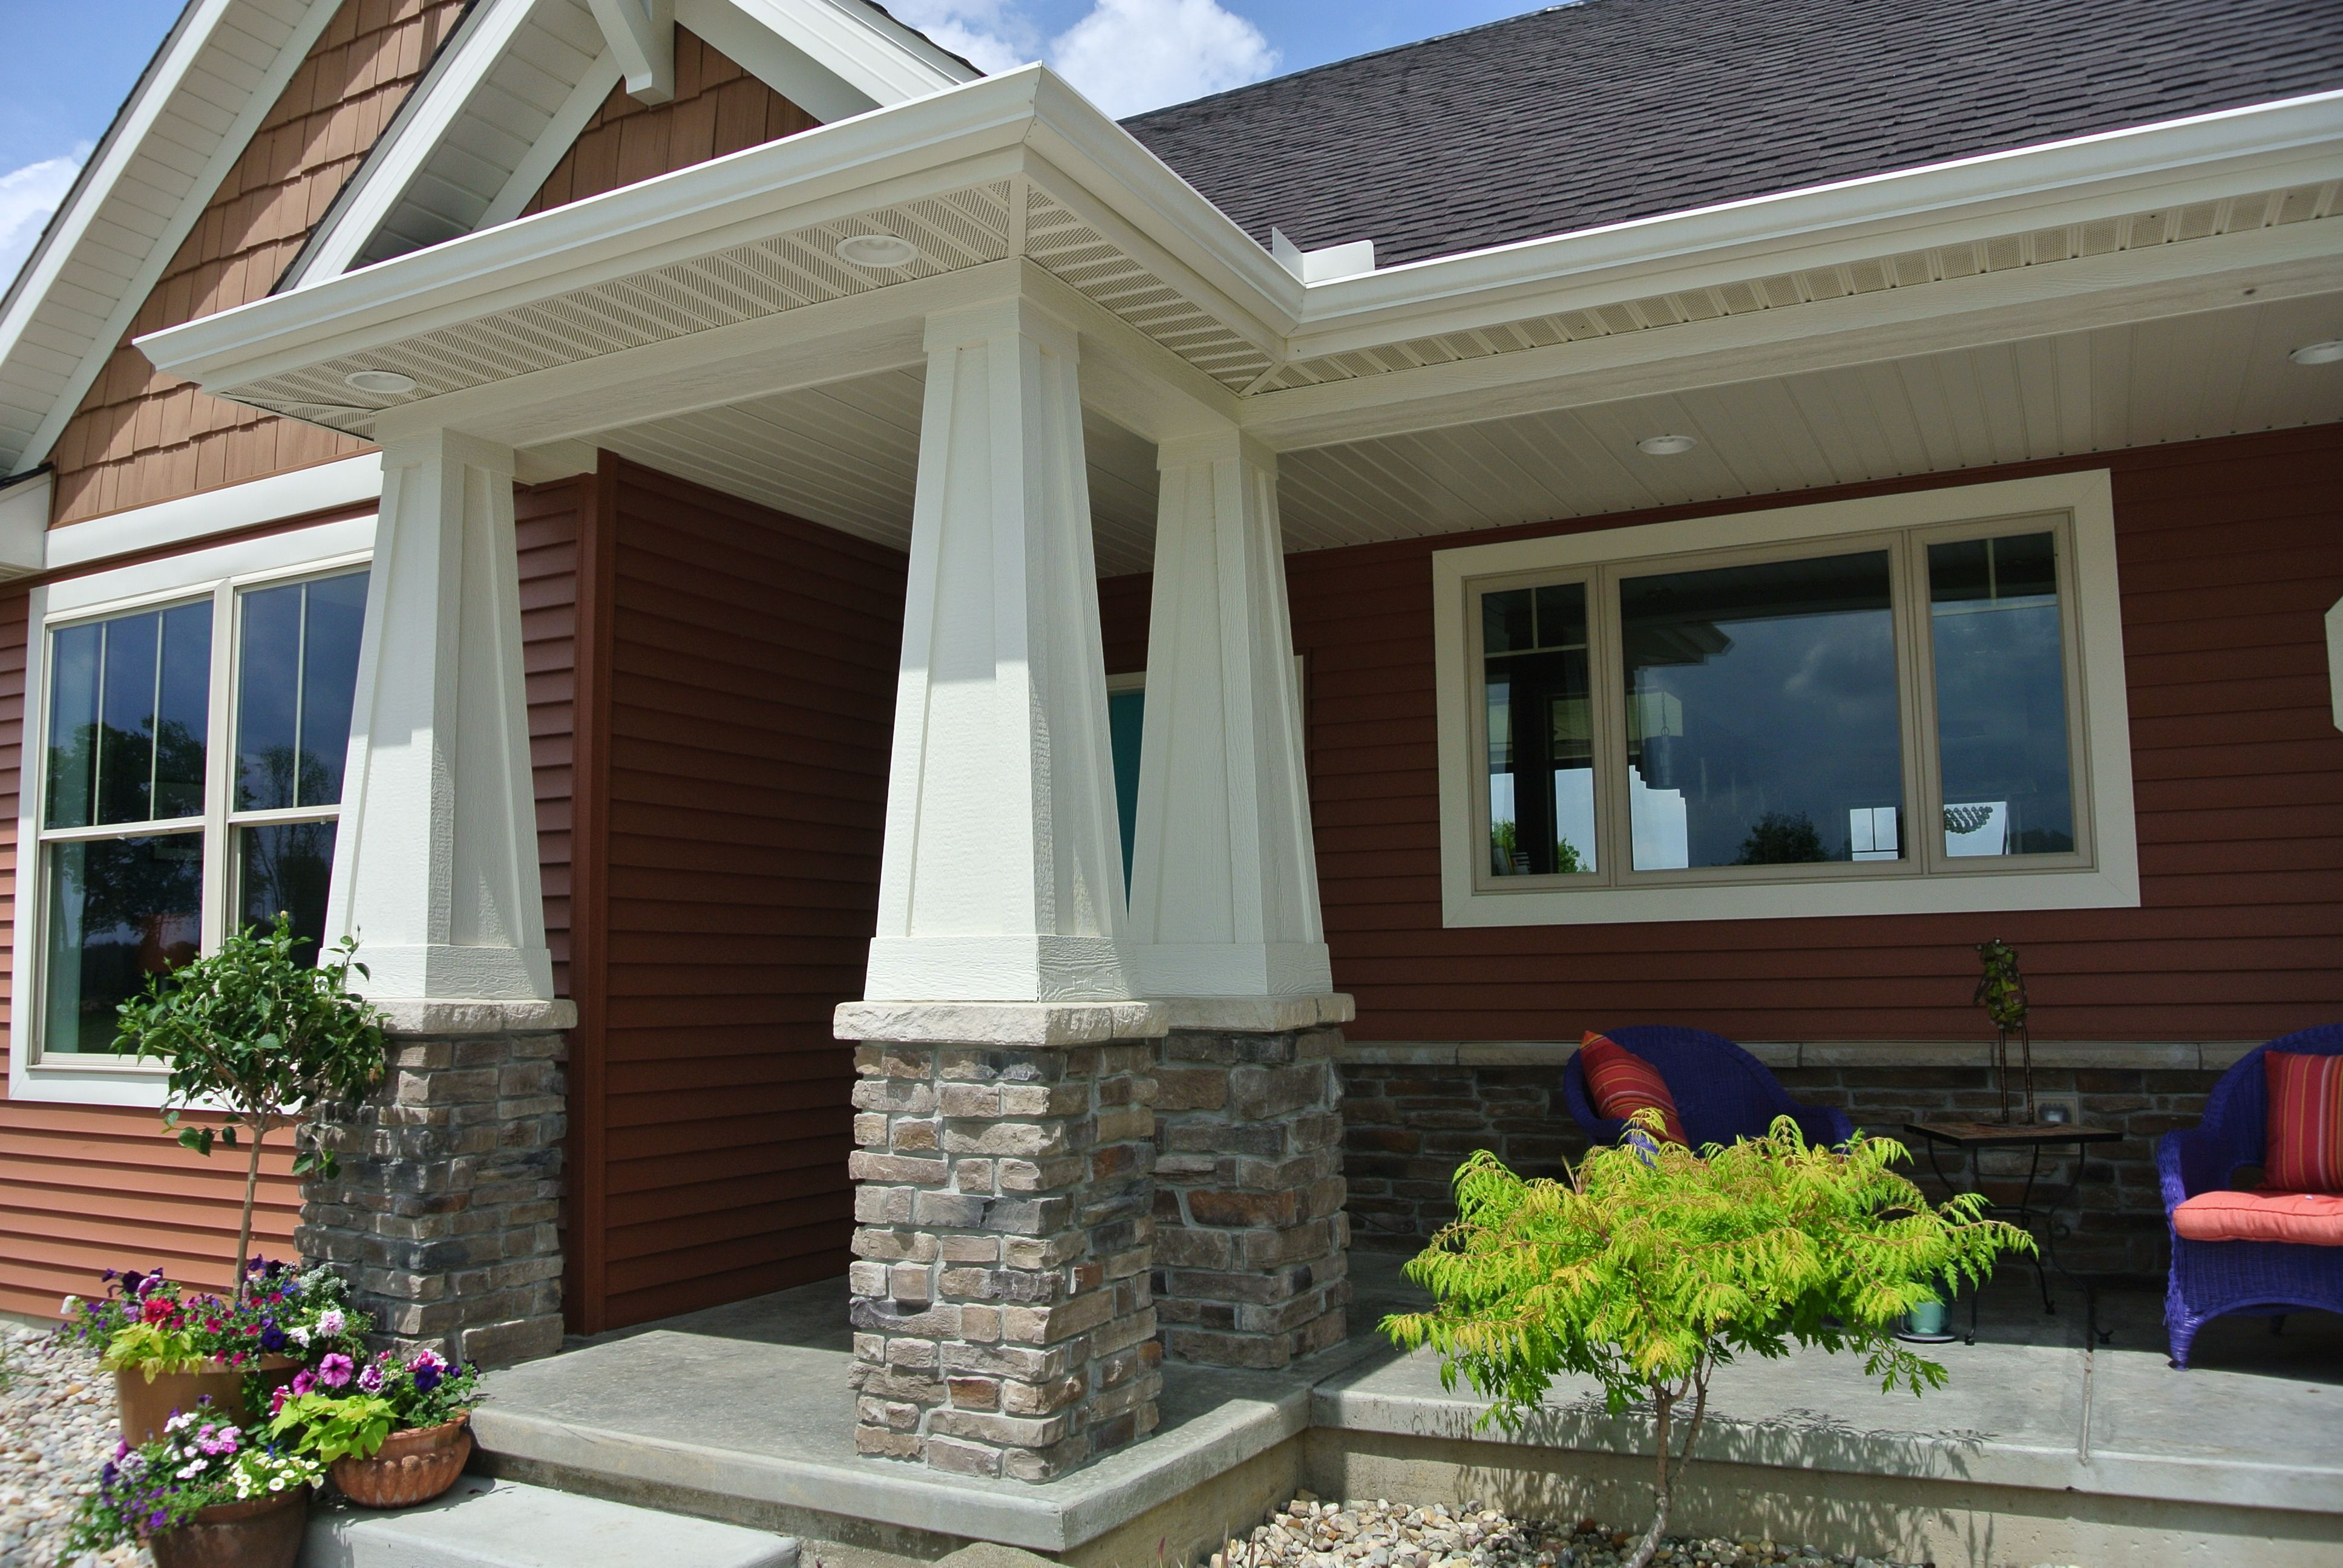 Stoned front porch pillars heritage laytite j n stone for Stone porches photos